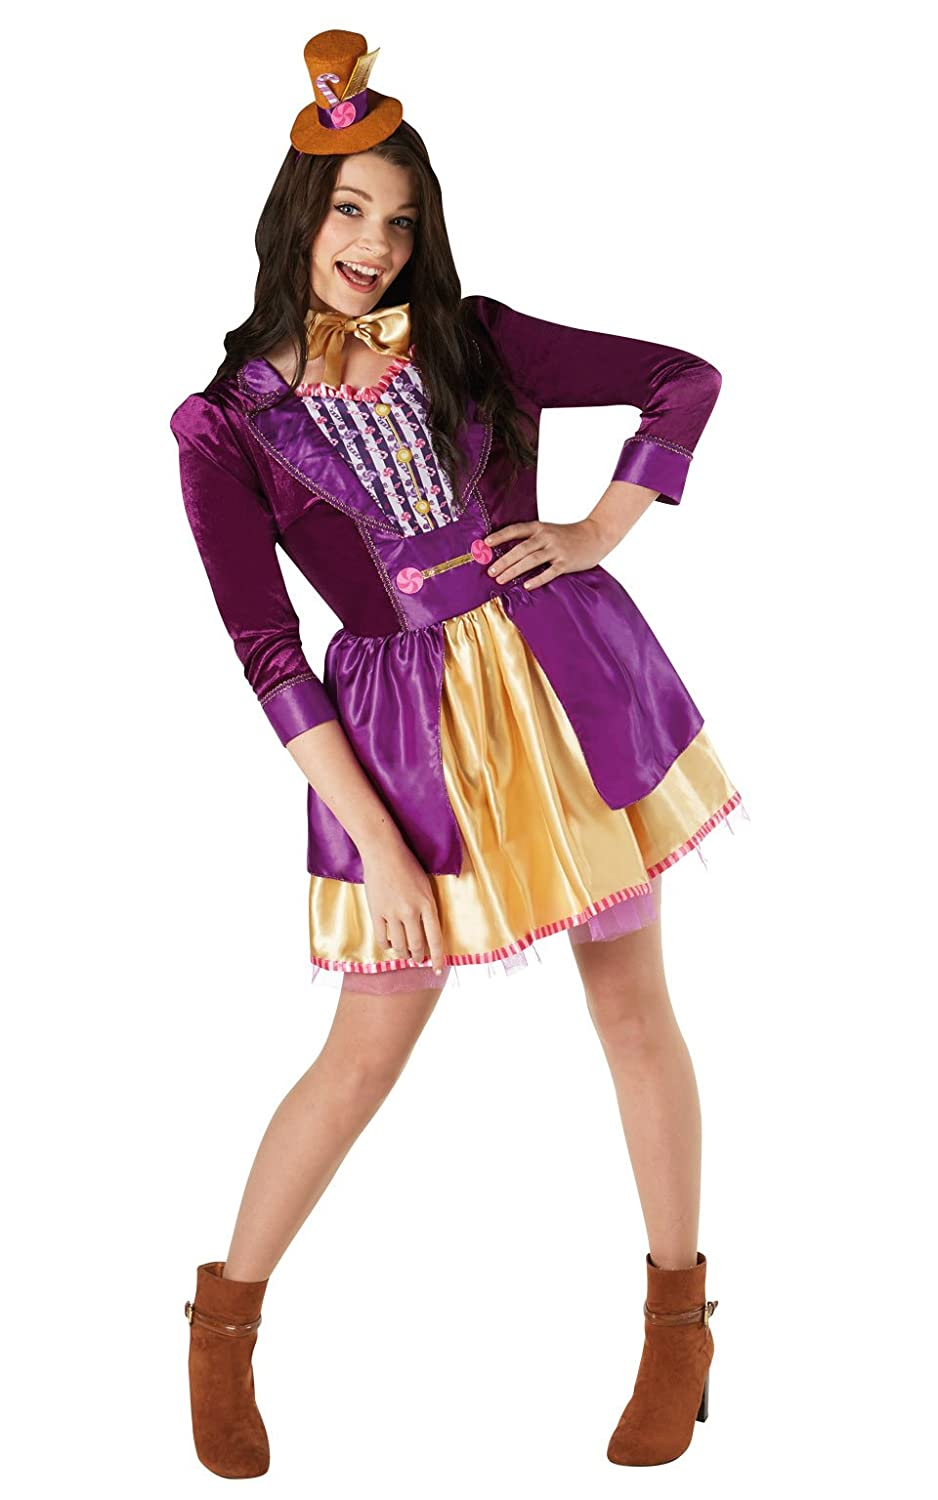 Amazon.com: Rubies Womens Official Willy Wonka Costume: Clothing